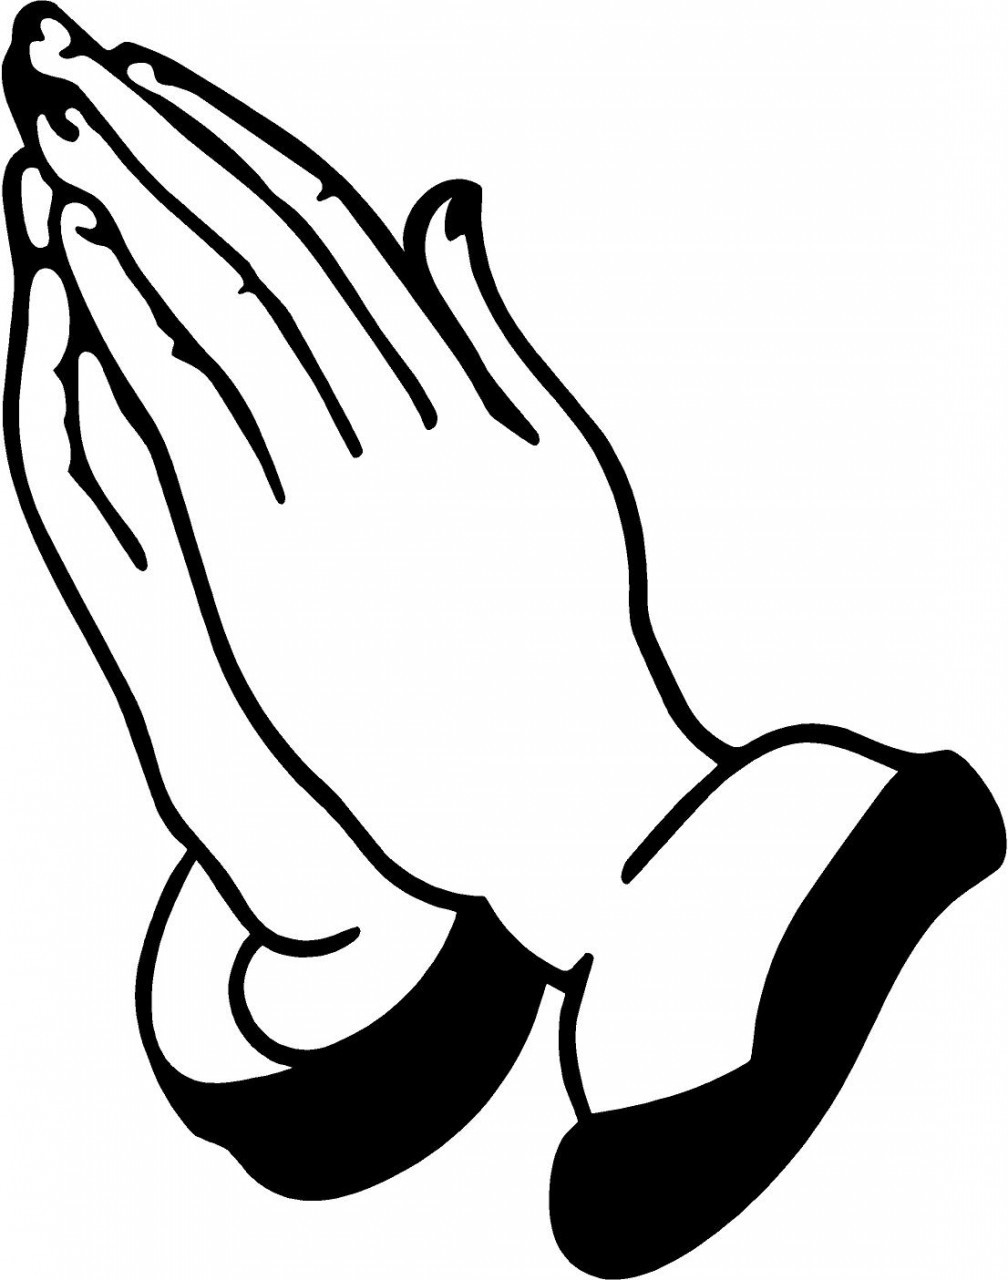 Praying hands praying hand prayer clipart image 9 2